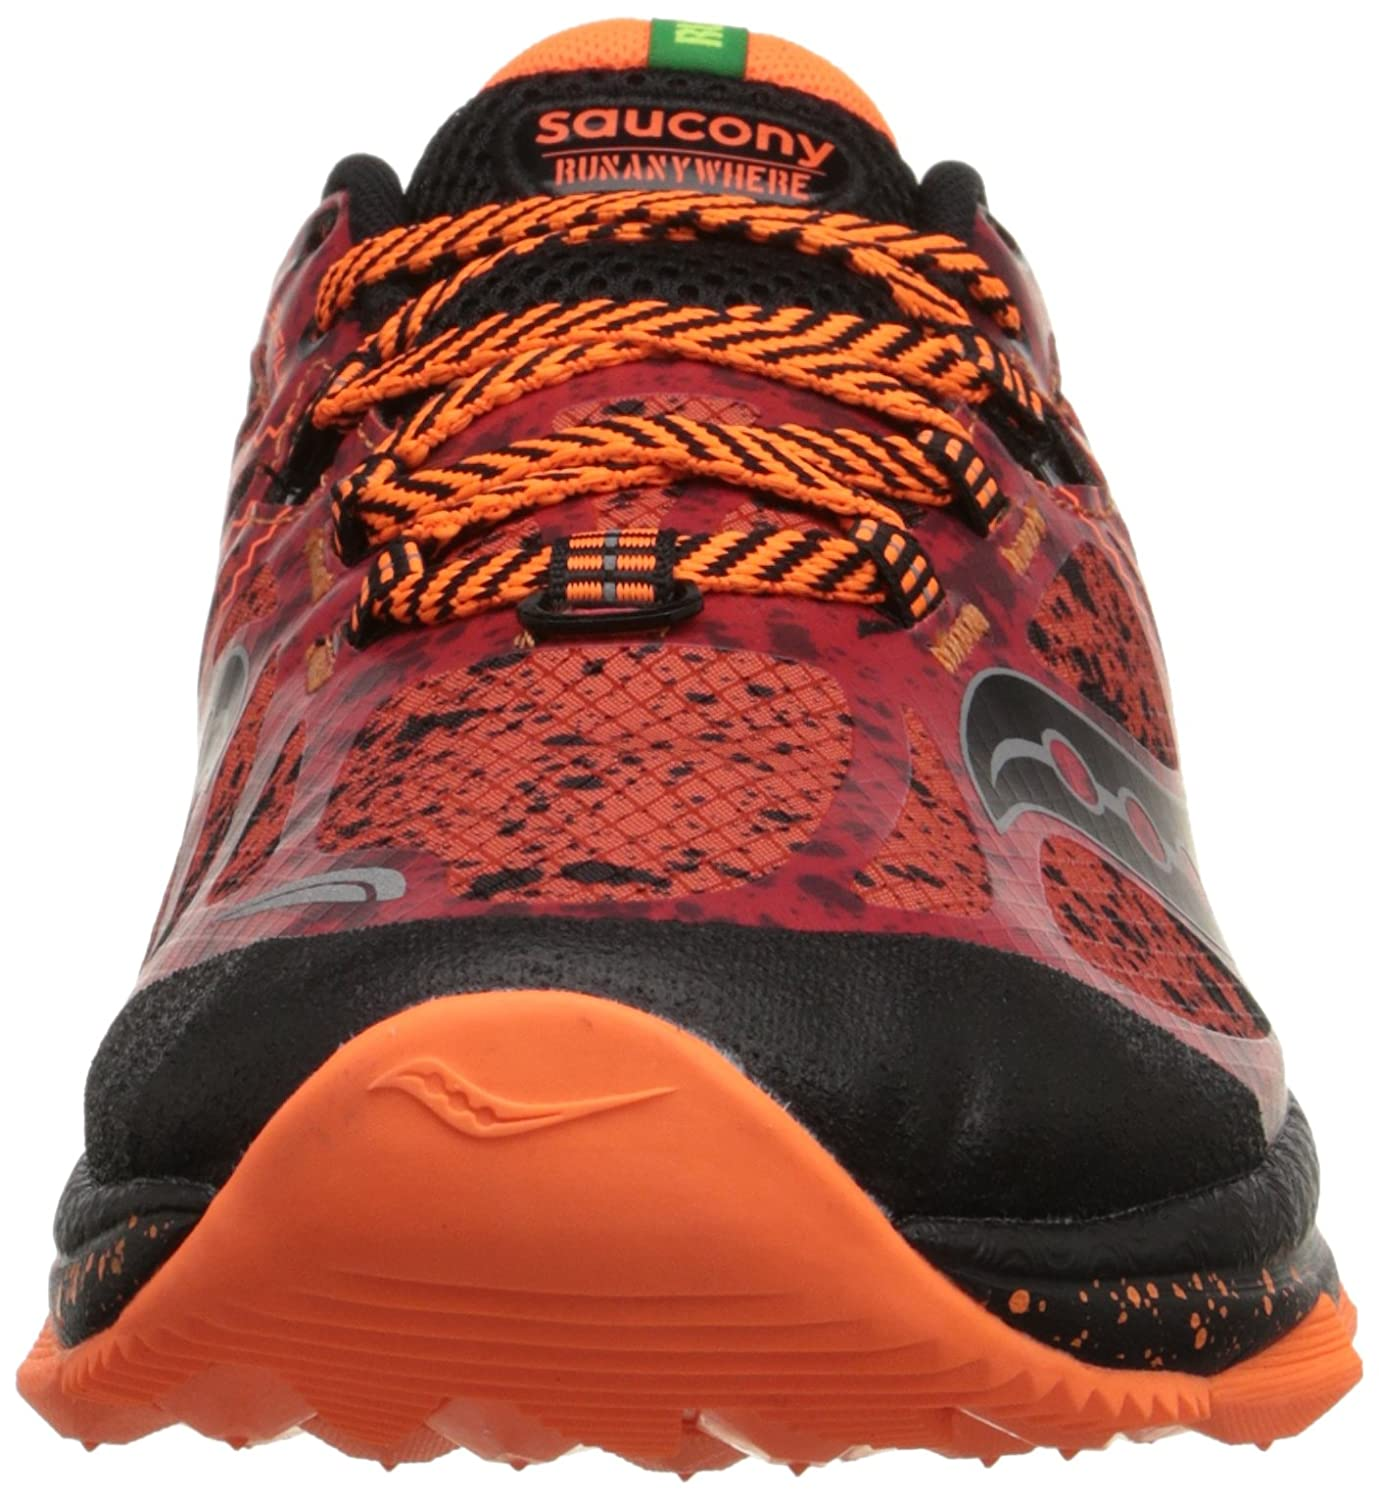 Saucony Men s Nomad TR Trail Running Shoe